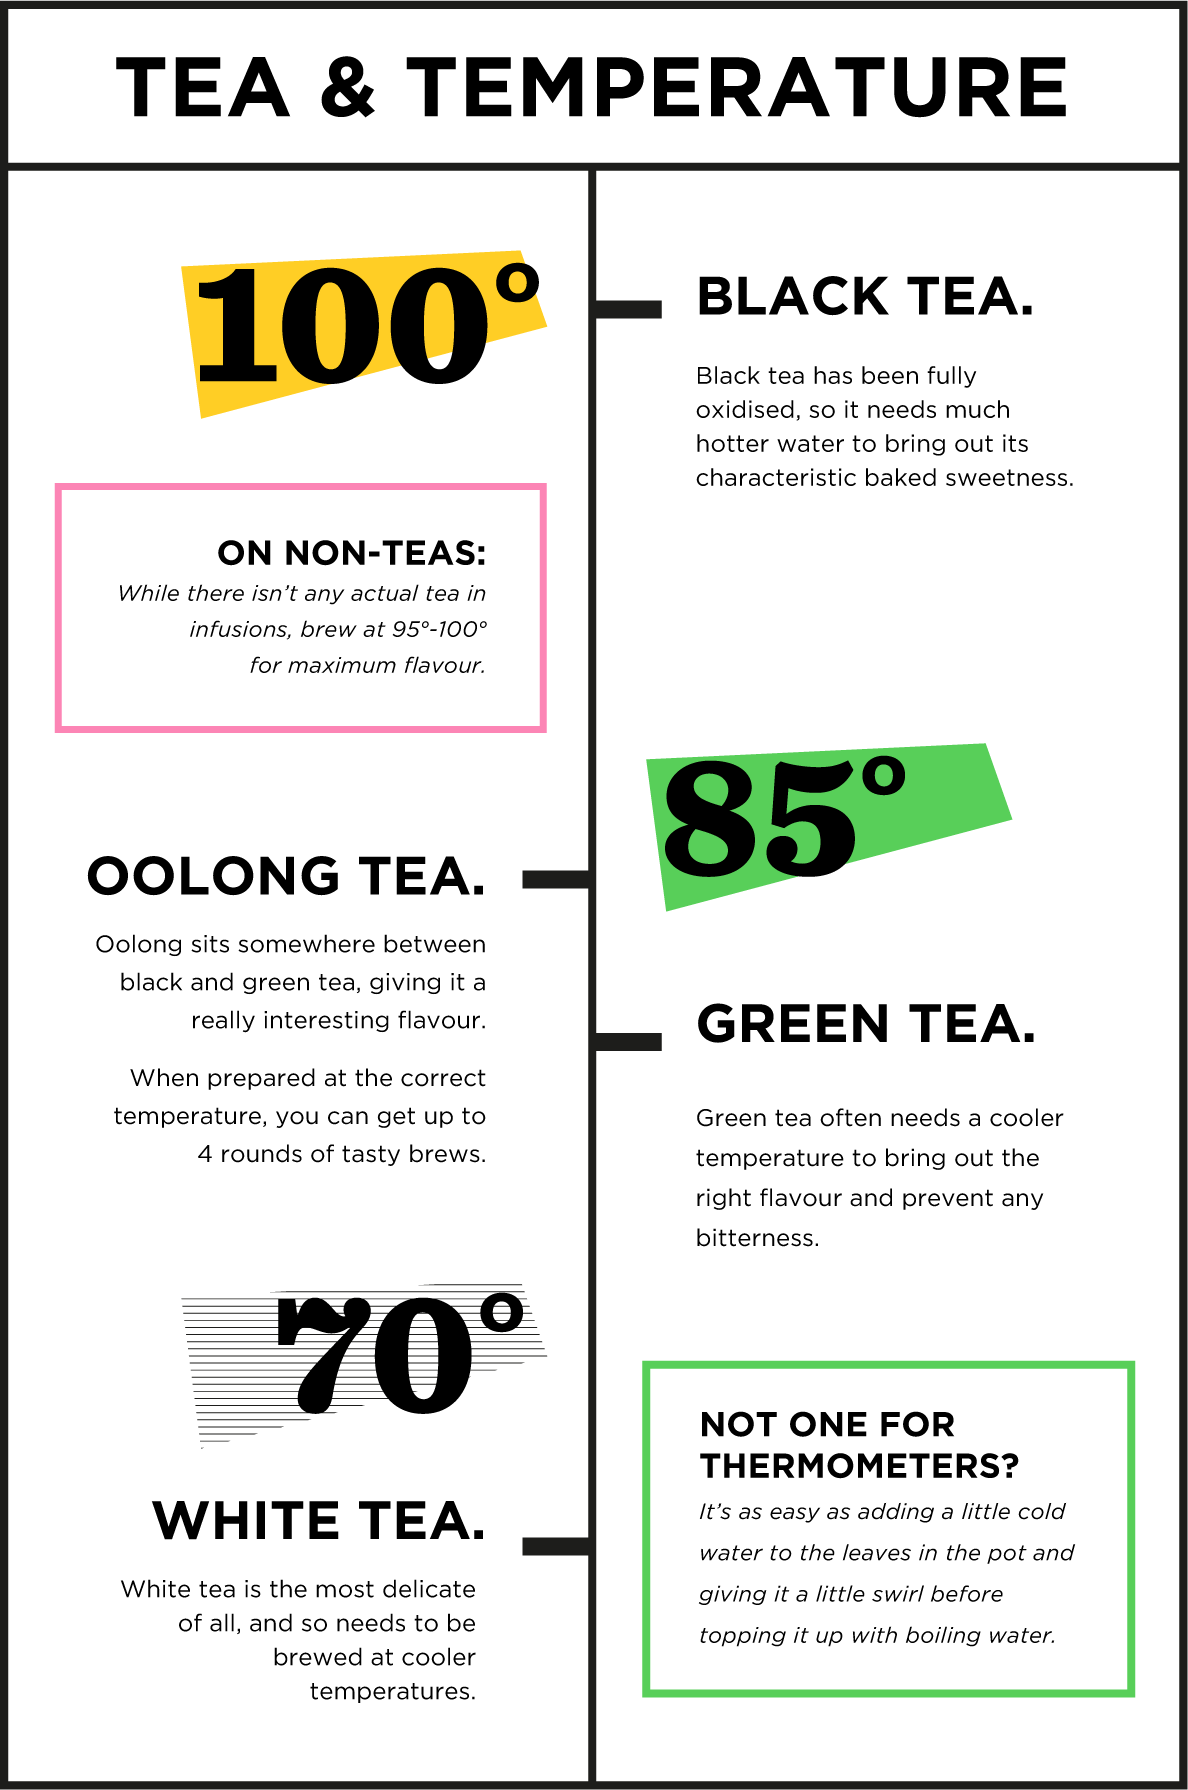 Tea and temperature brewing information.